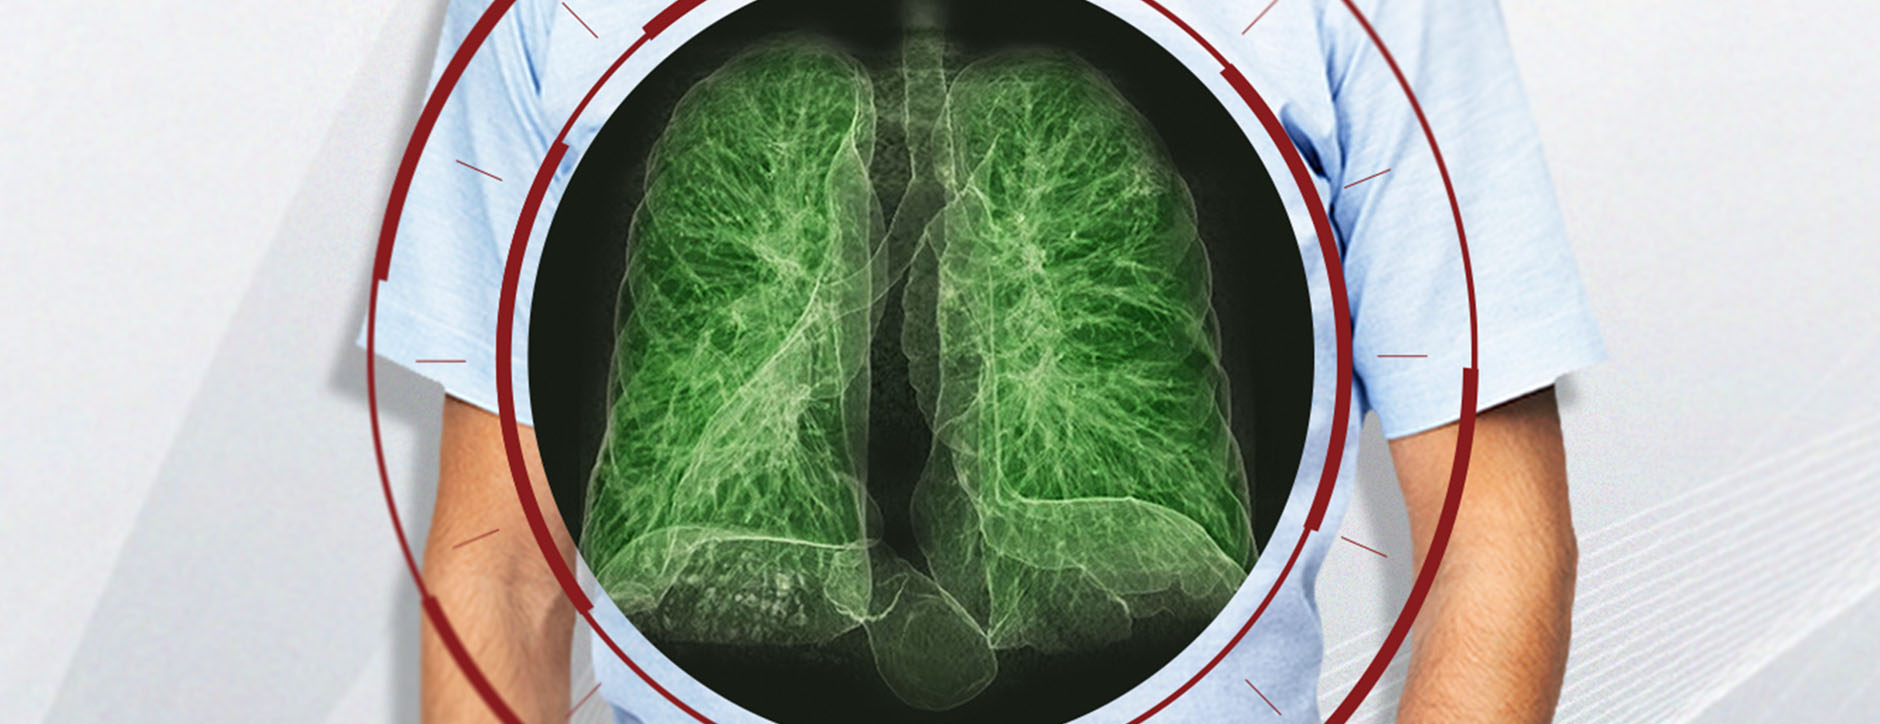 Low-Dose CT Lung Cancer Screening